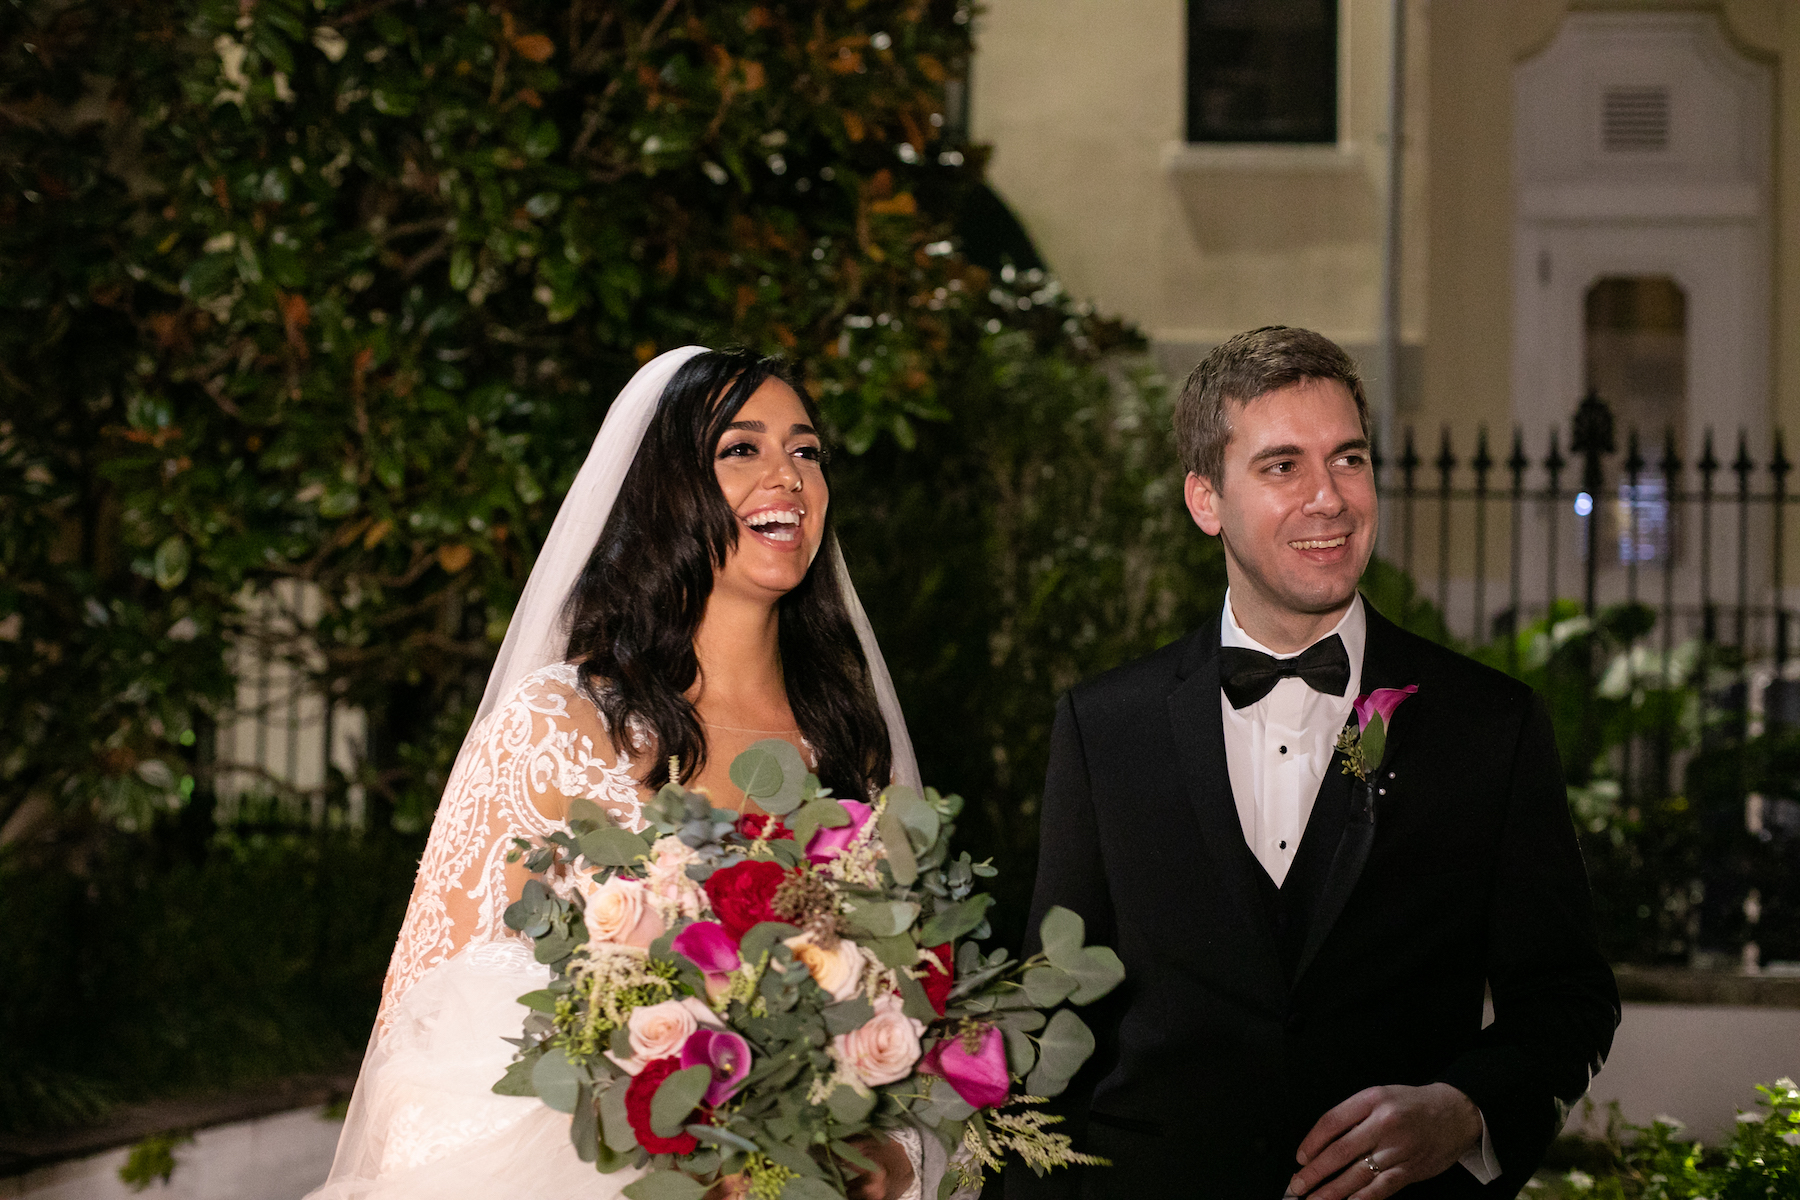 Henry and Christina star in Season 11 of Married At First Sight